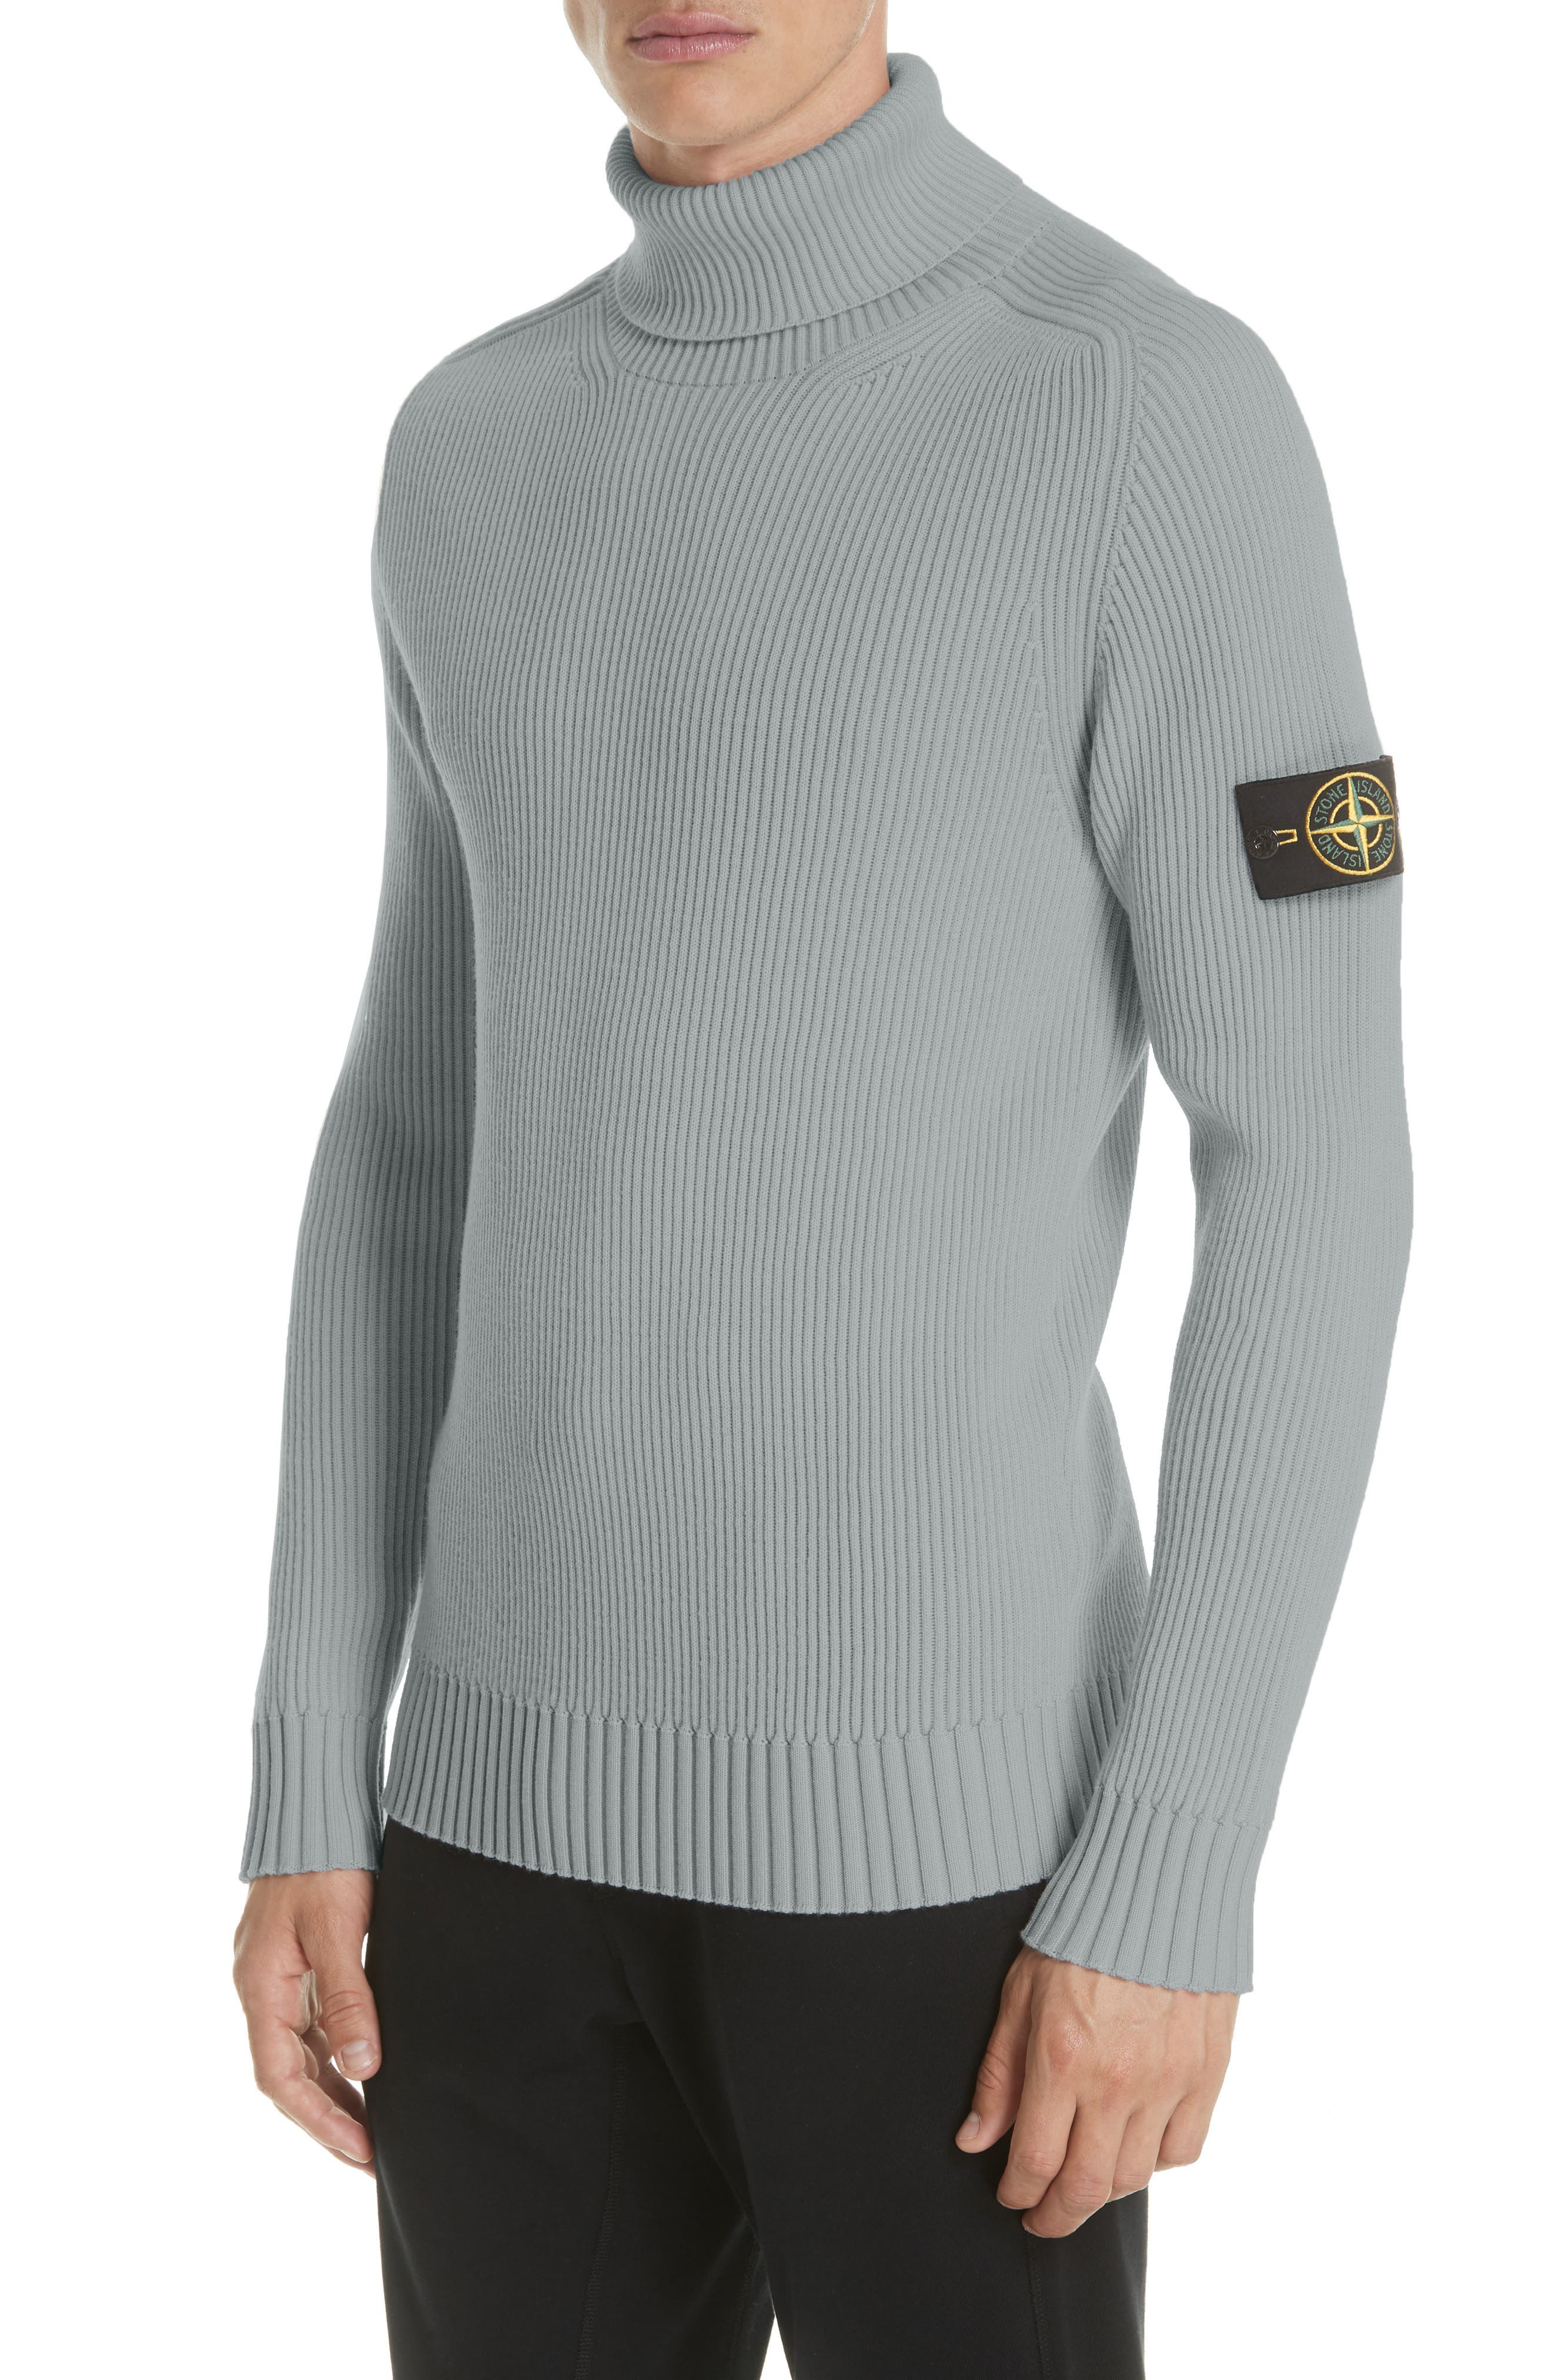 Ribbed Wool Turtleneck Sweater,                             Main thumbnail 1, color,                             020